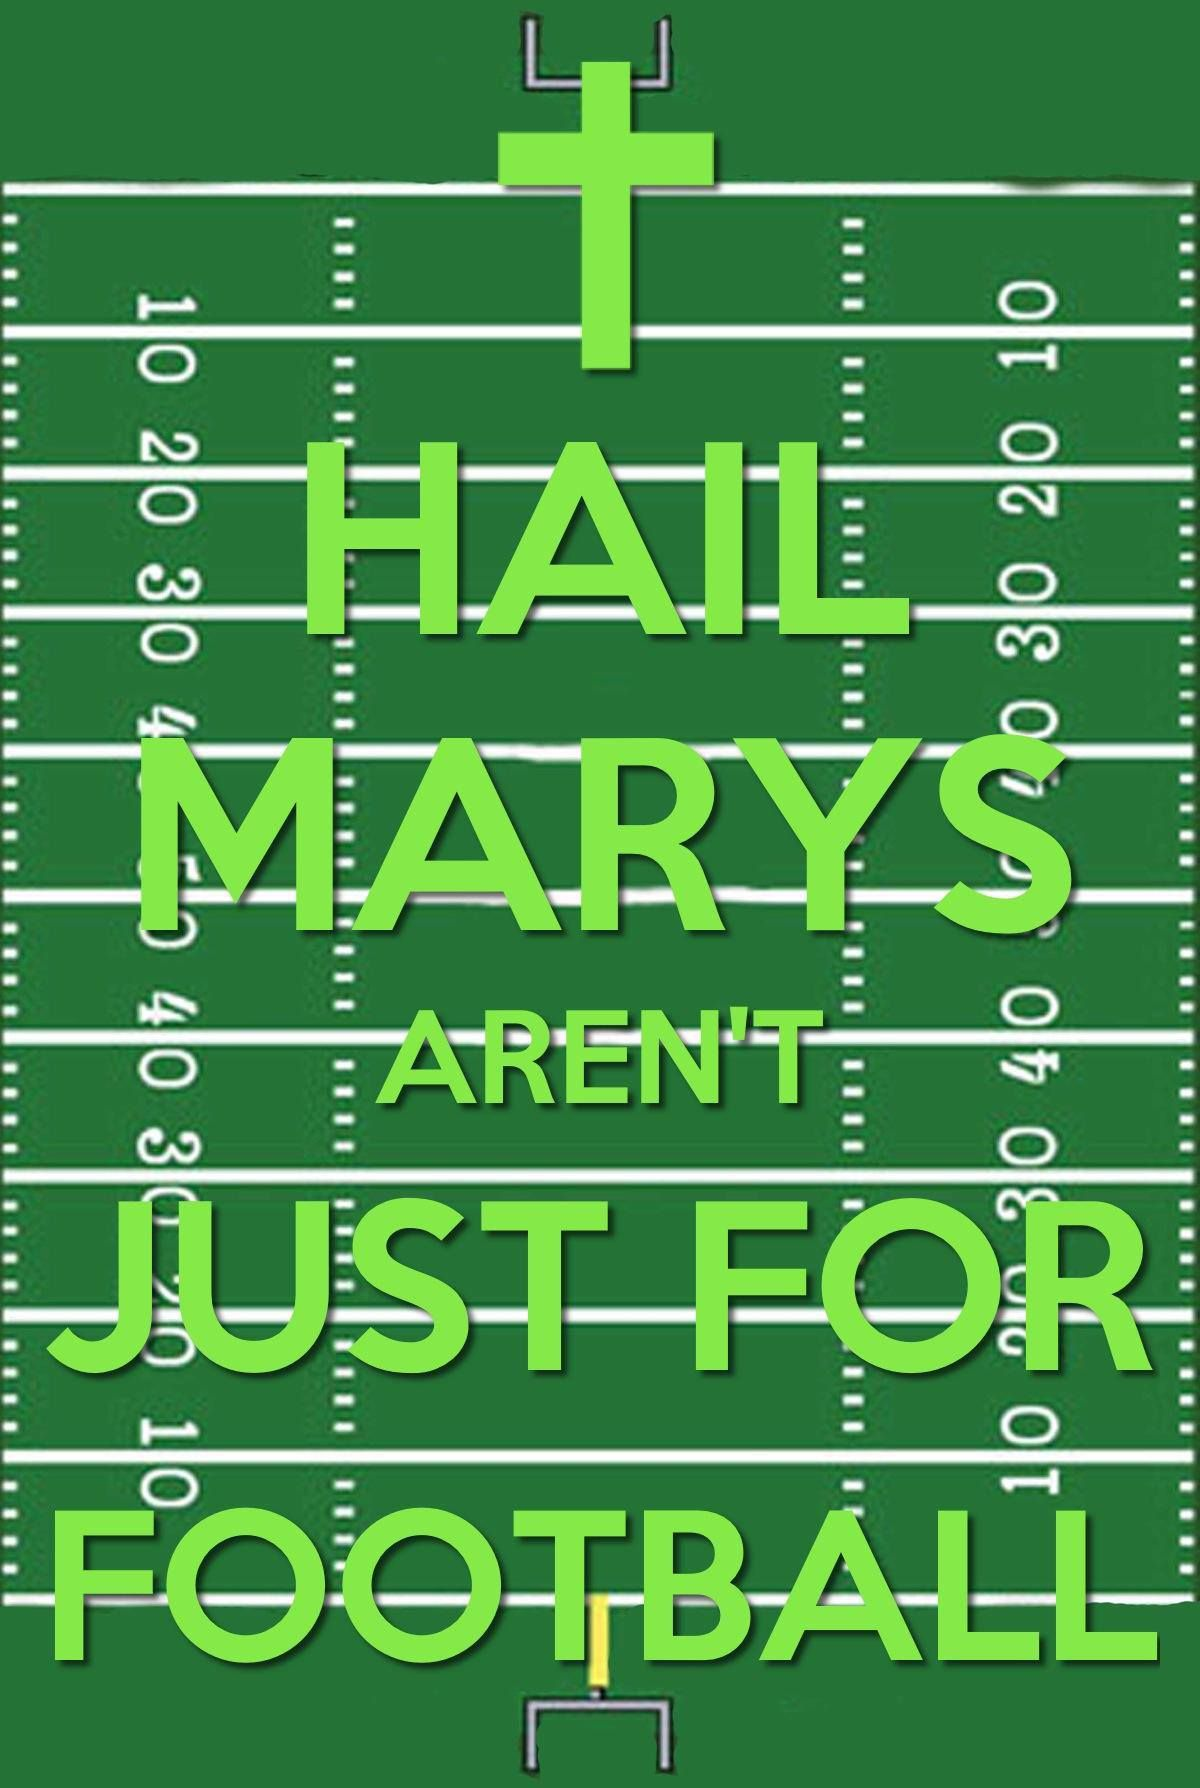 Hail Mary's Aren't Just For Football! Game On :-)